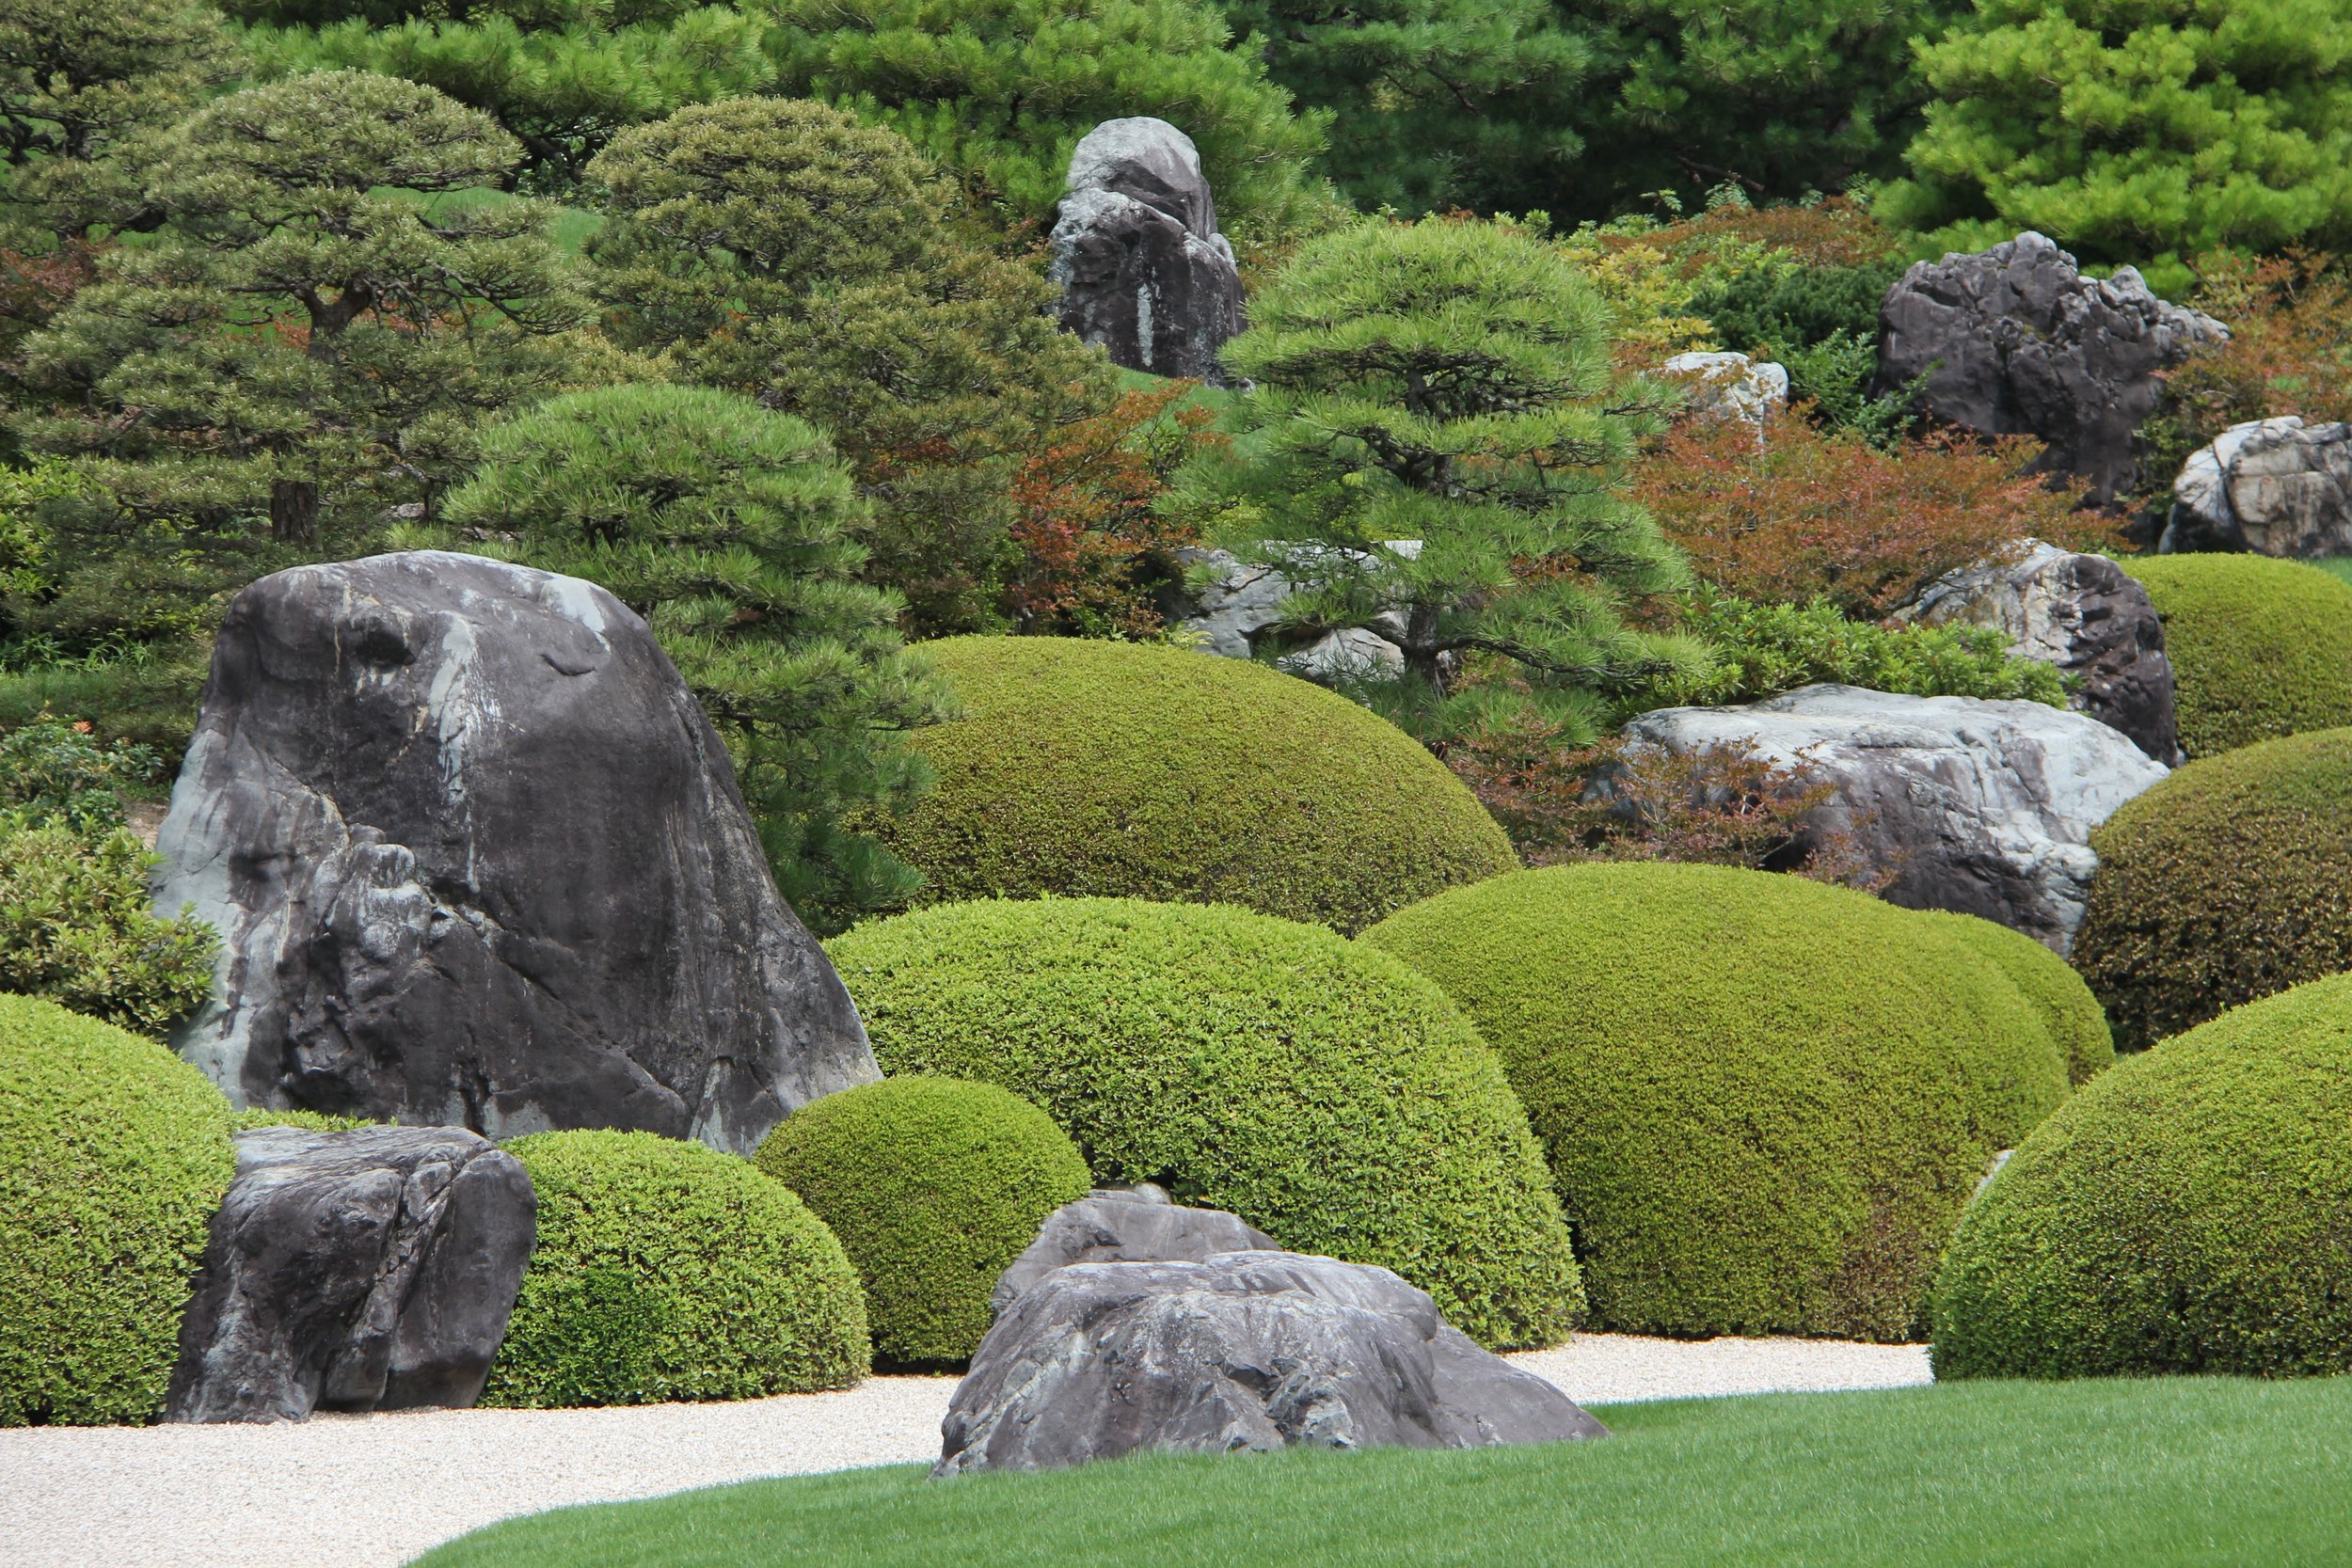 The Adachi Museum's 6 gardens and around 1,500 exhibits of Japanese paintings, pottery, and other works of art occupy the 165,000 square-meter area.